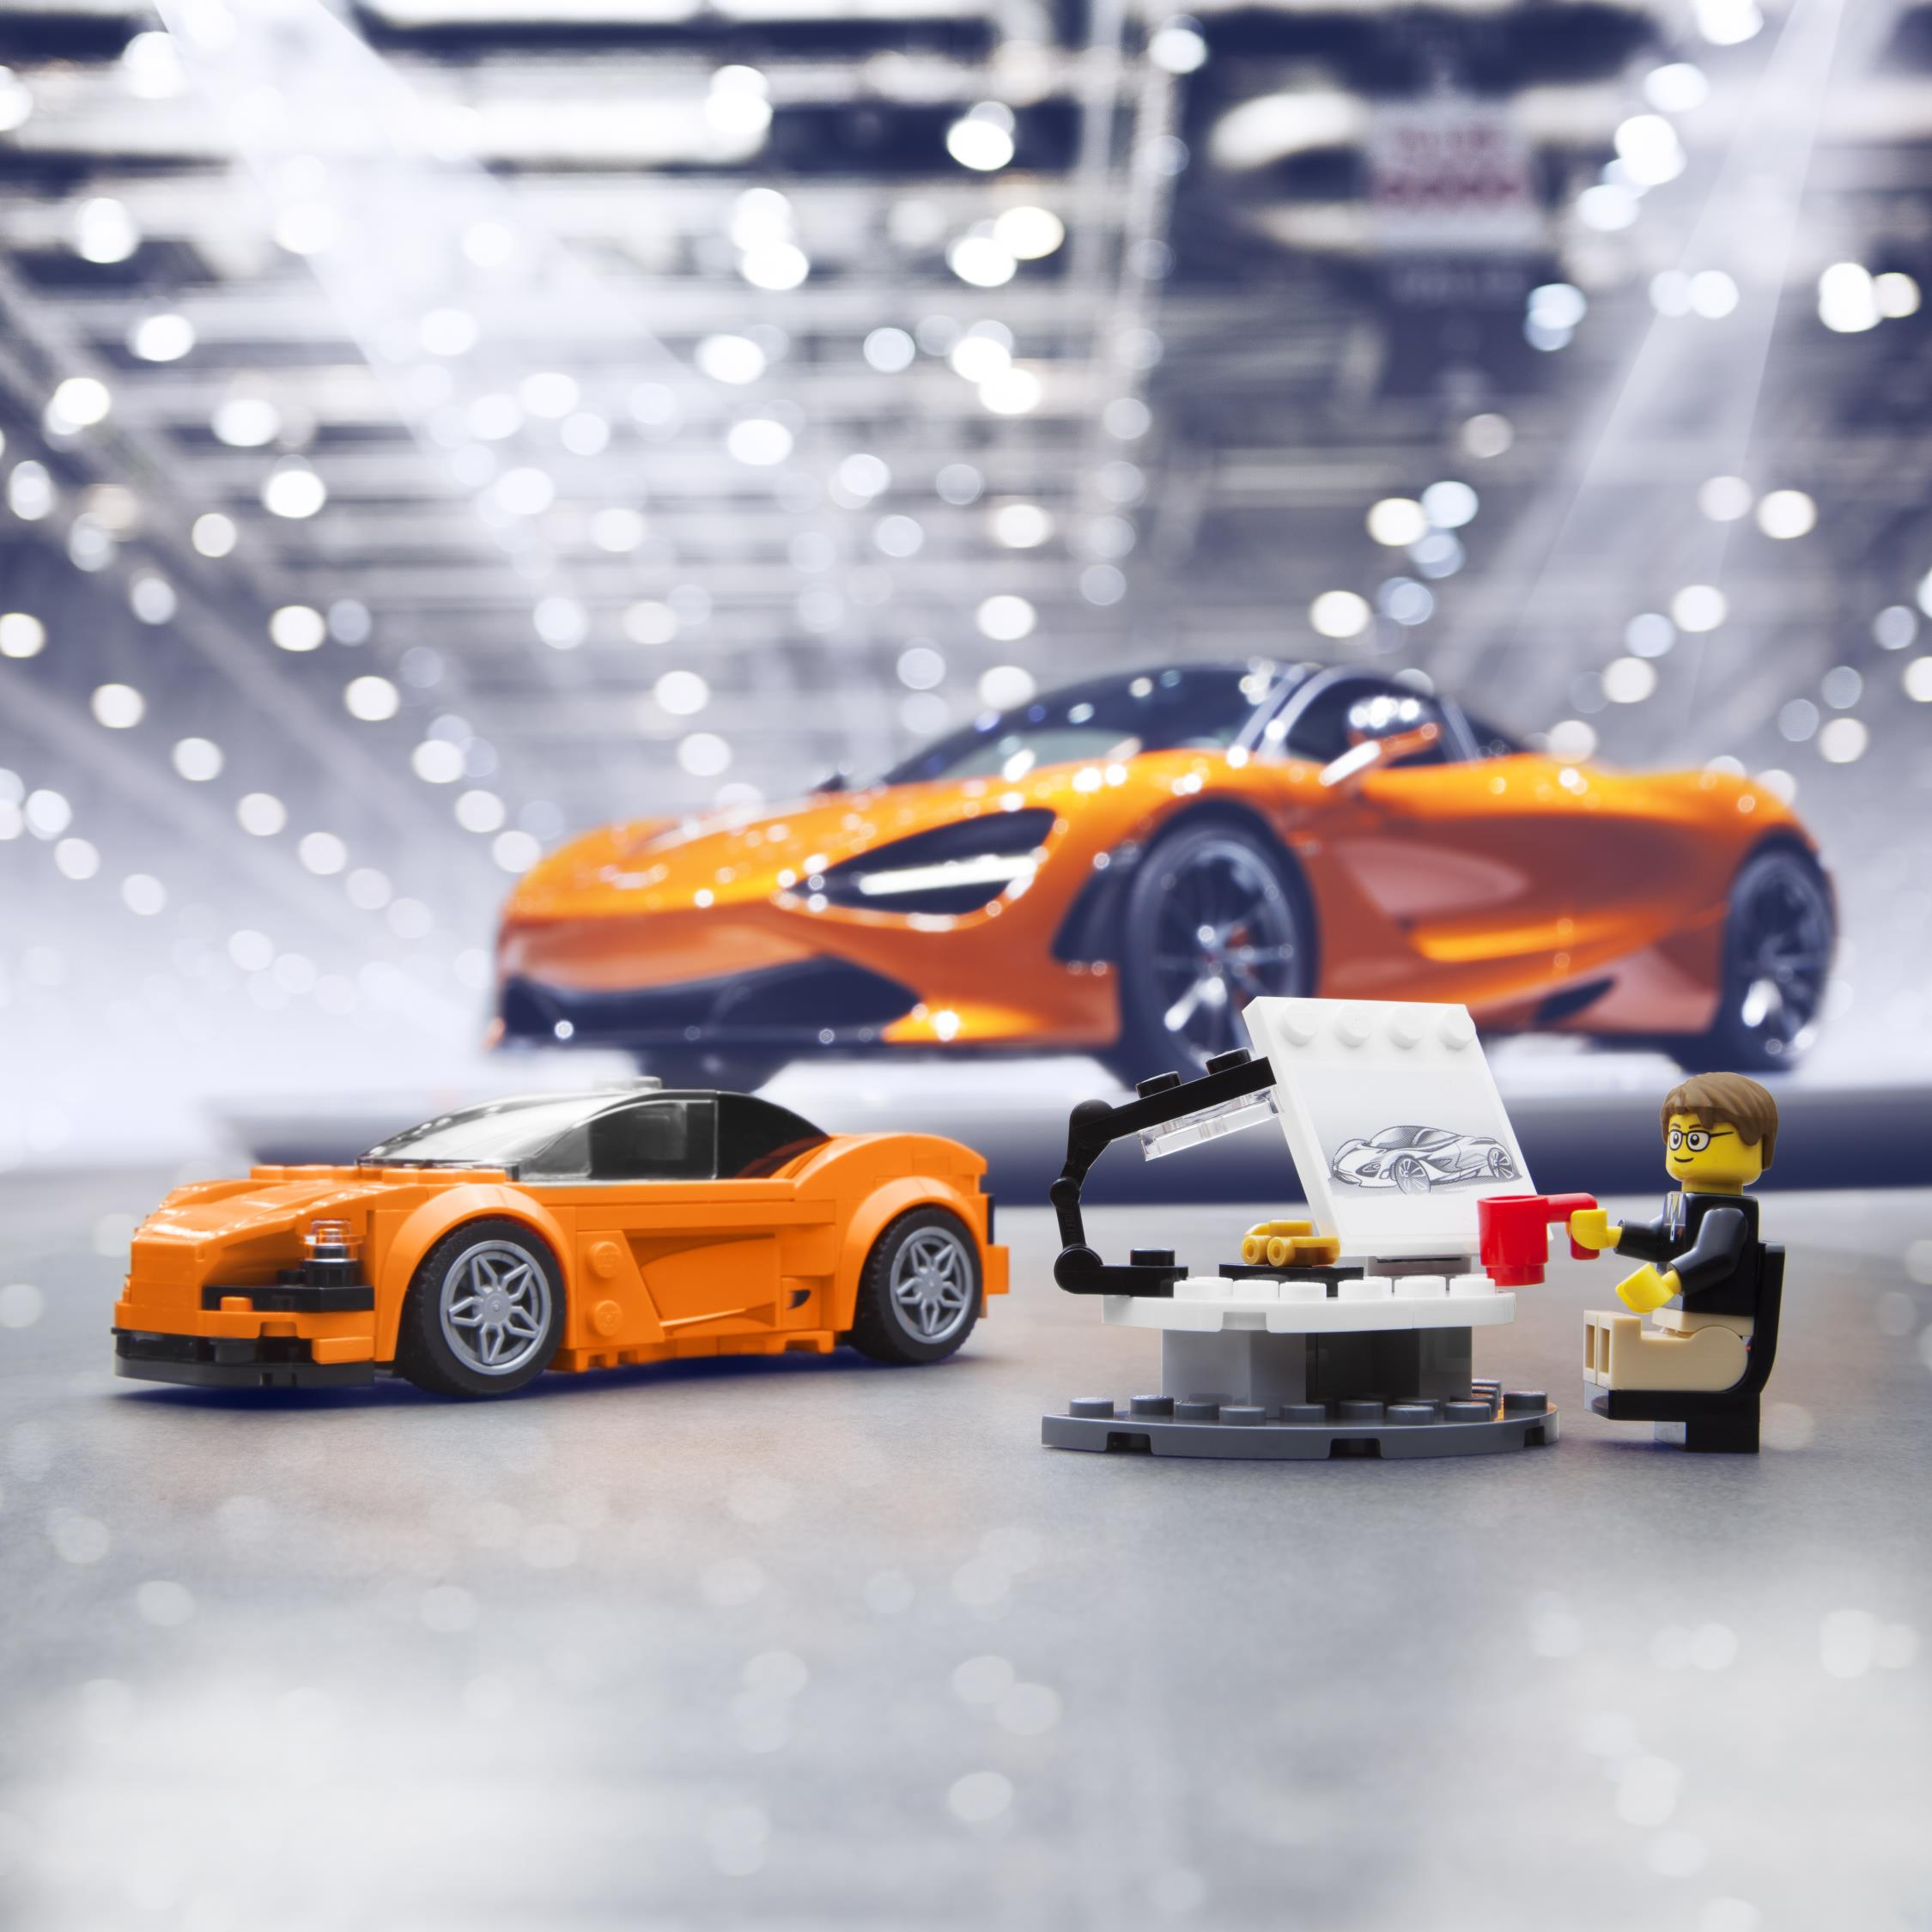 Mclaren Lego Kit Perfect For Aspiring Car Designers